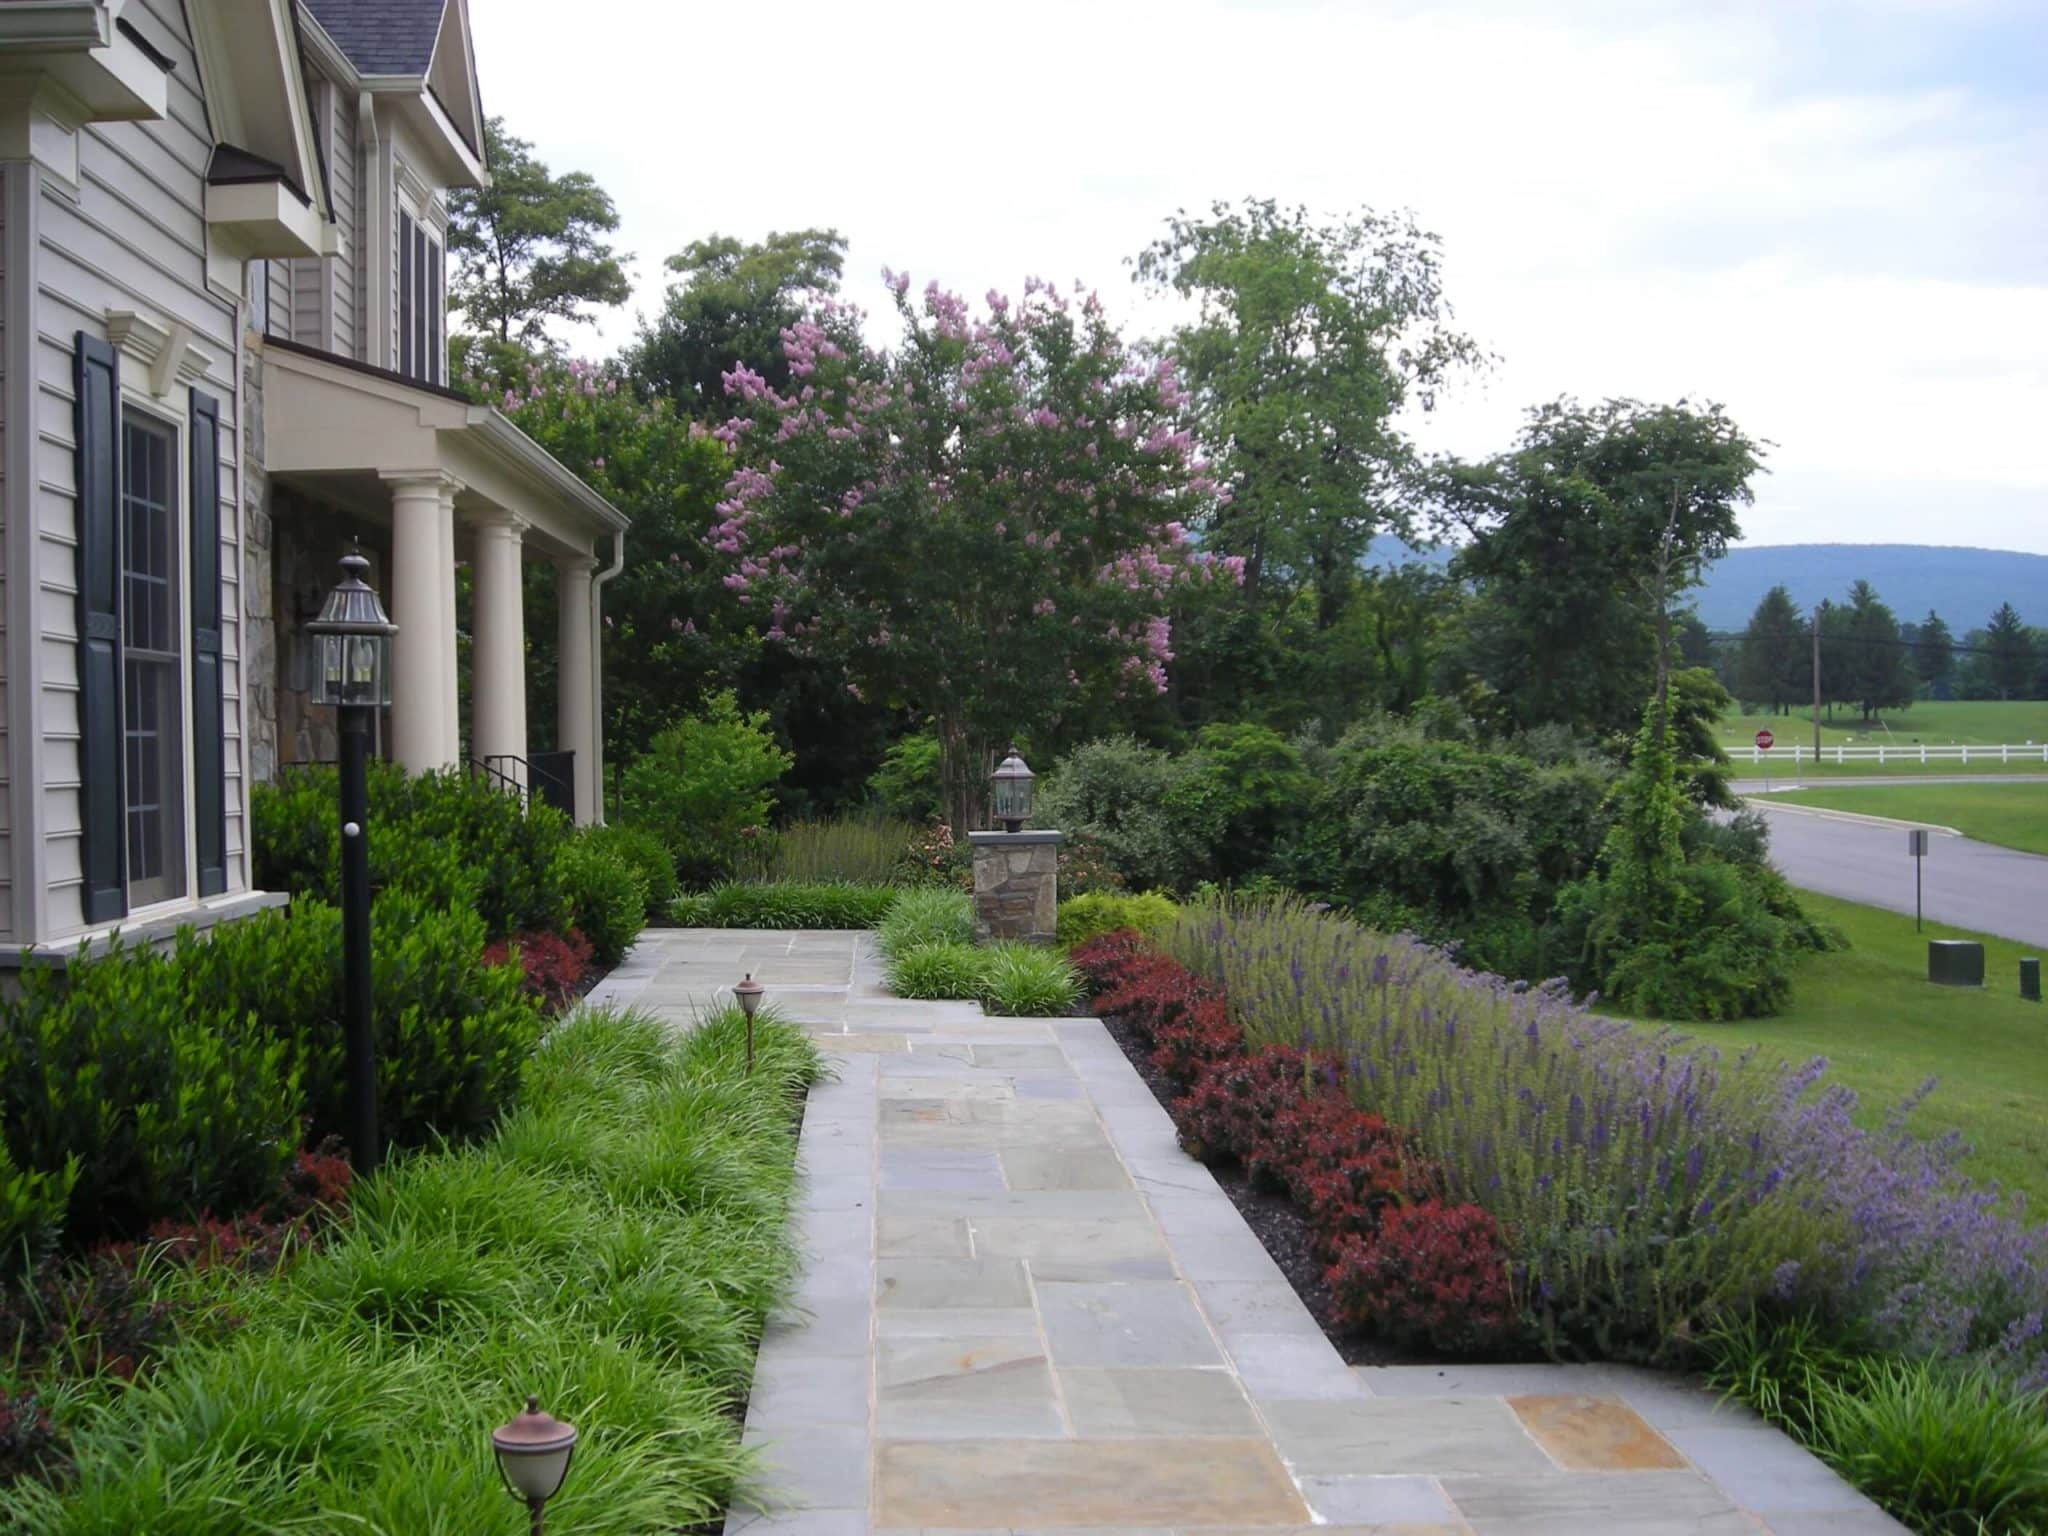 459 Front Flagstone Walkway with Stone Column and Light